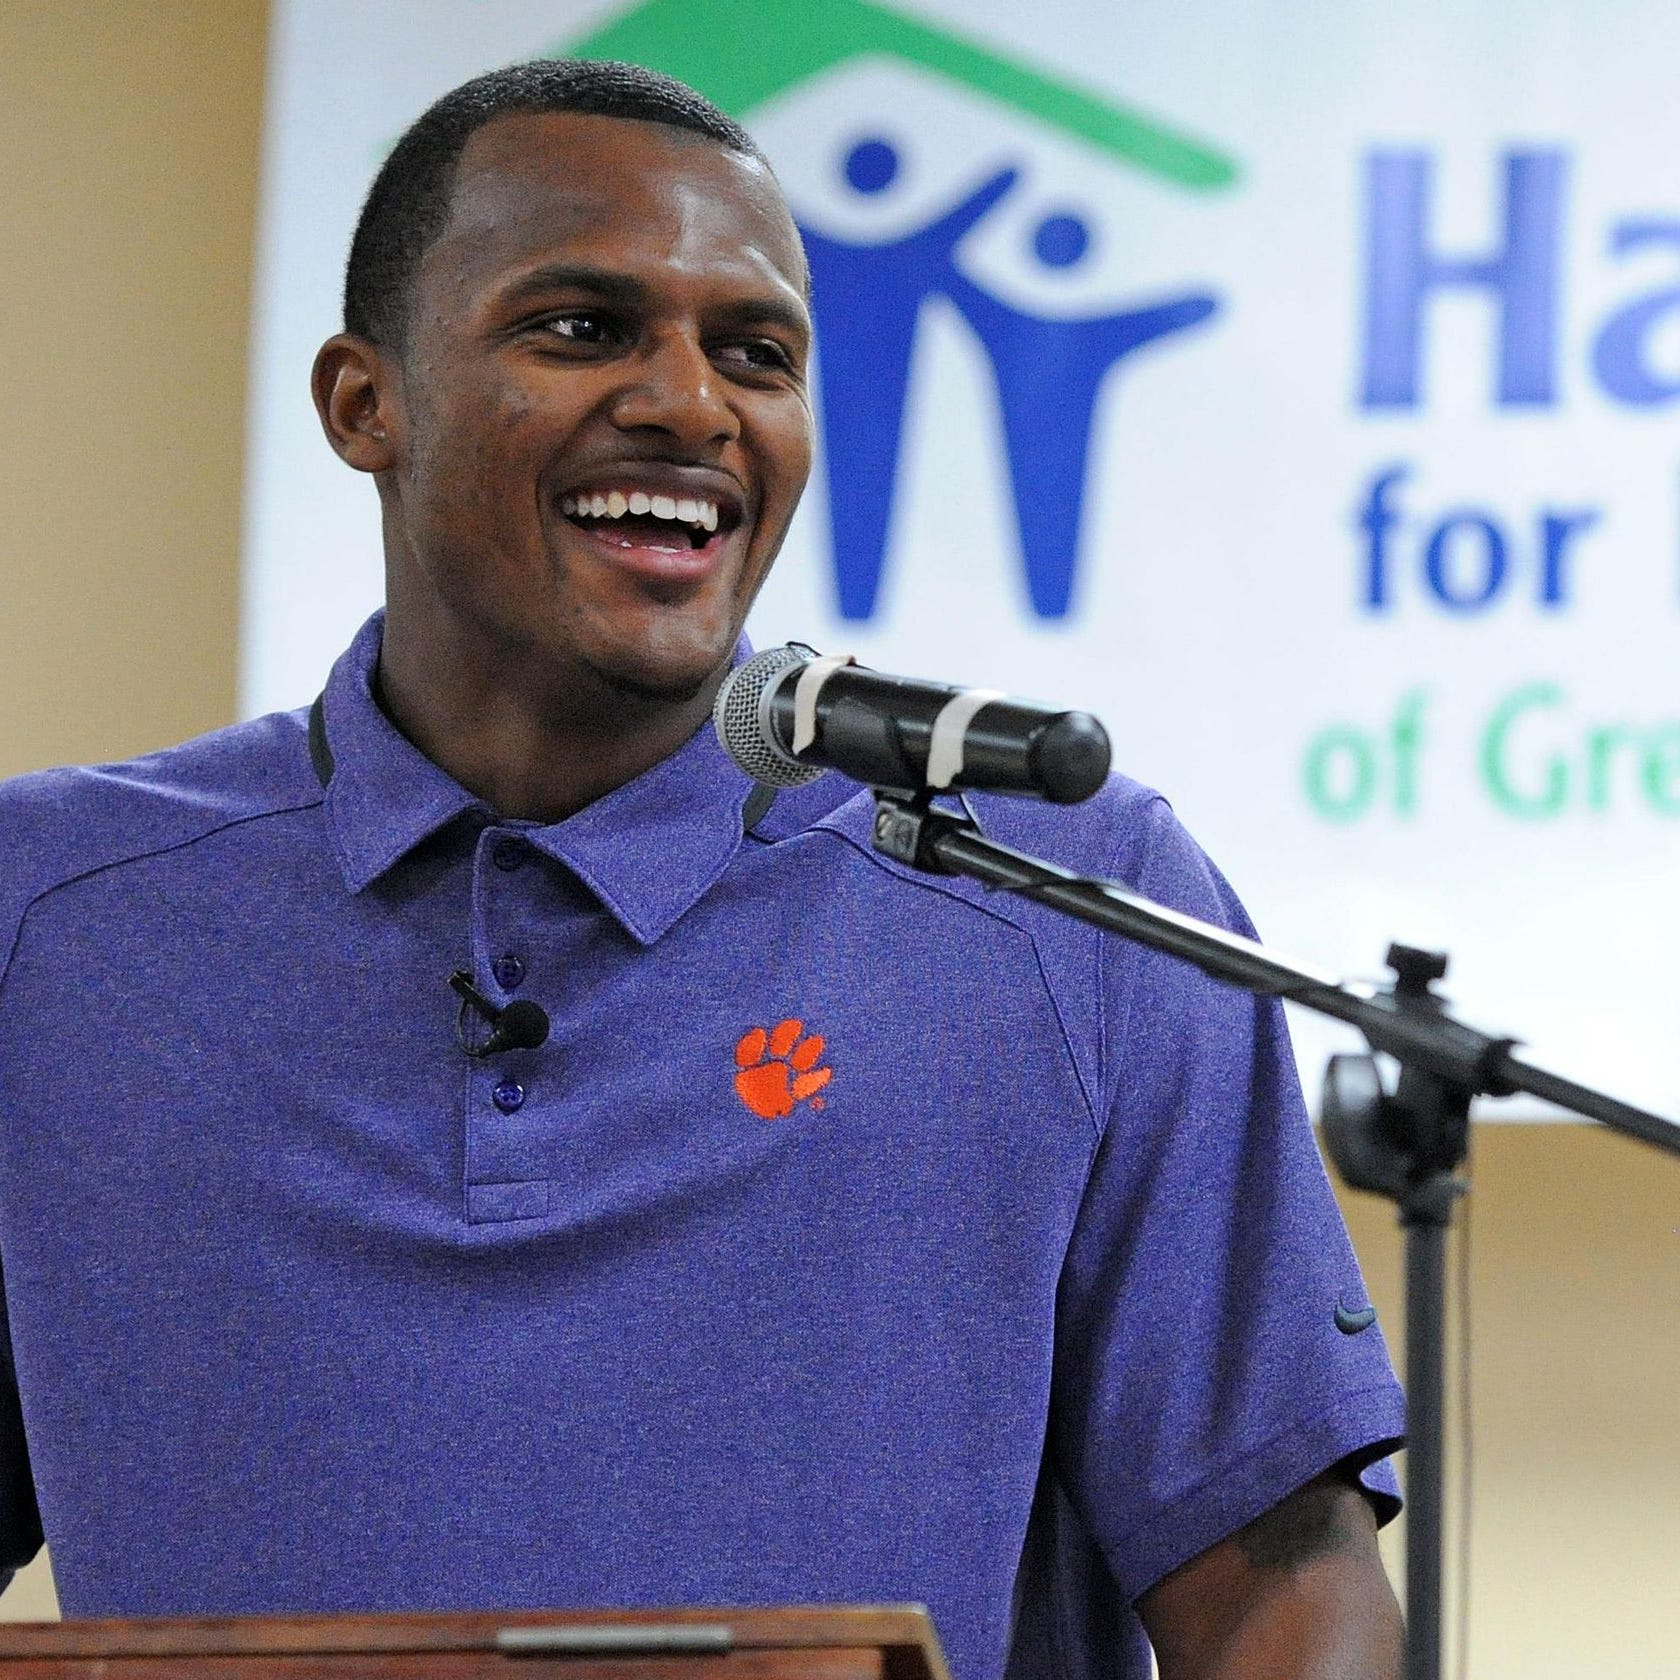 Former Clemson football star Deshaun Watson offers encouragement to Alabama's Josh Jacobs